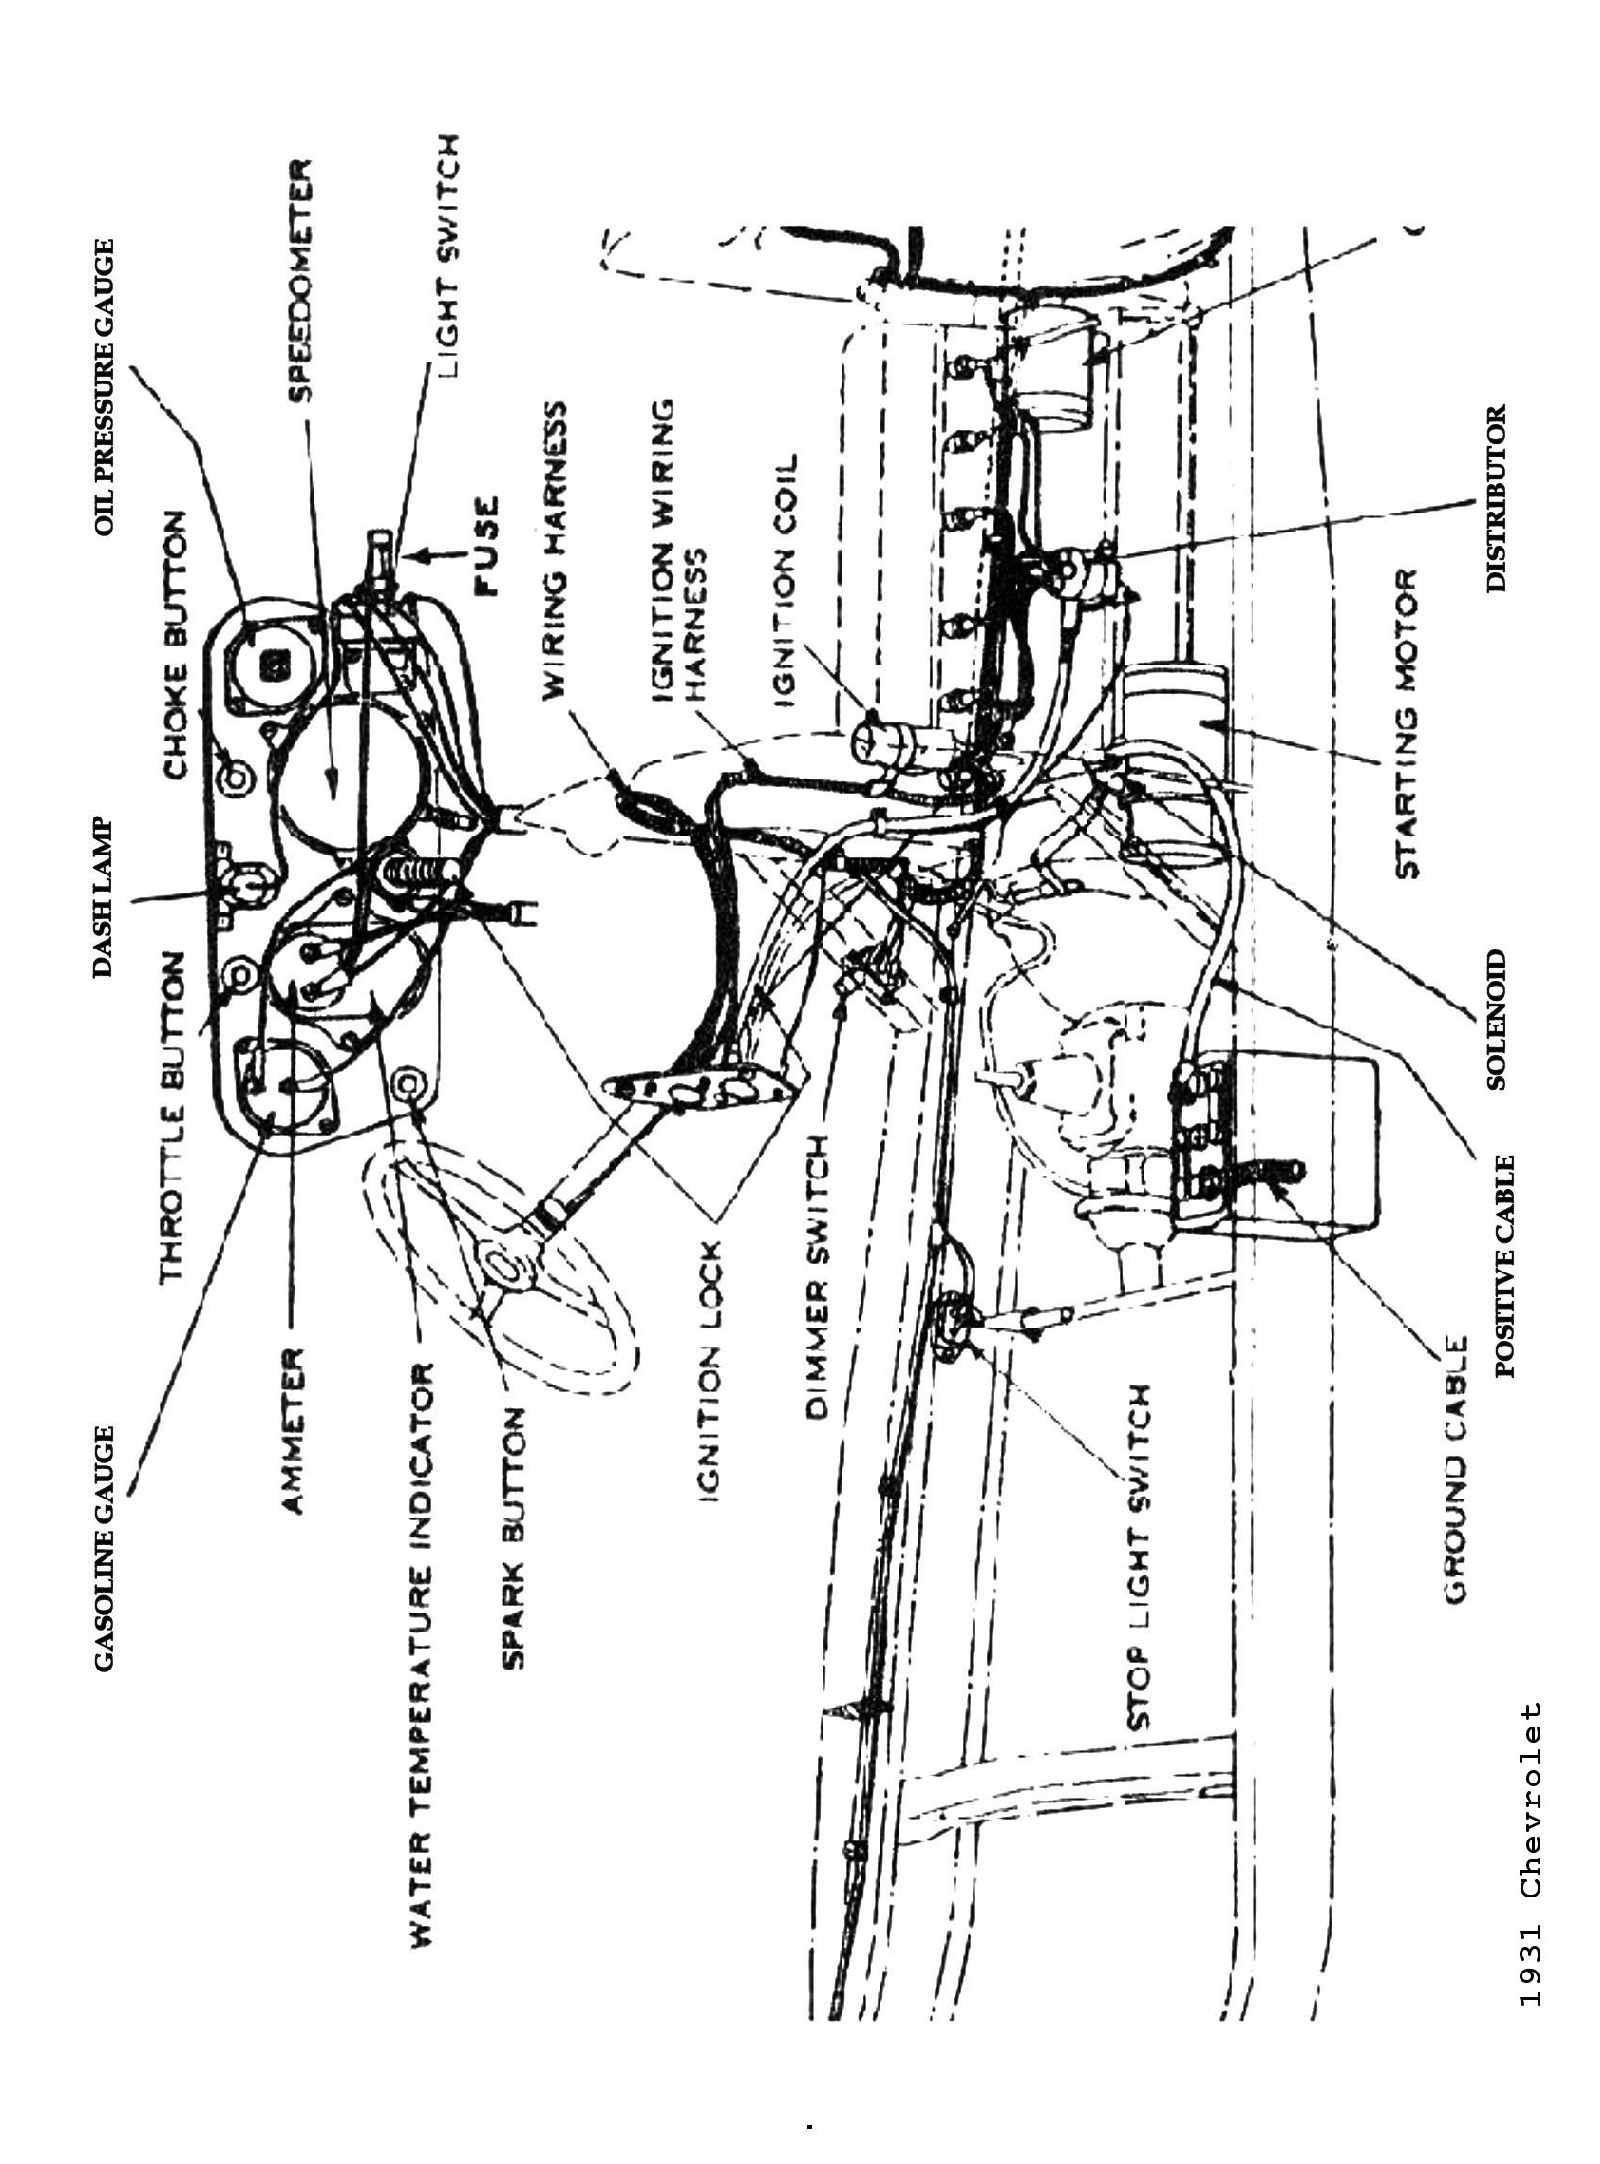 31harness chevy wiring diagrams 1929 Pontiac Sedan Model at gsmportal.co